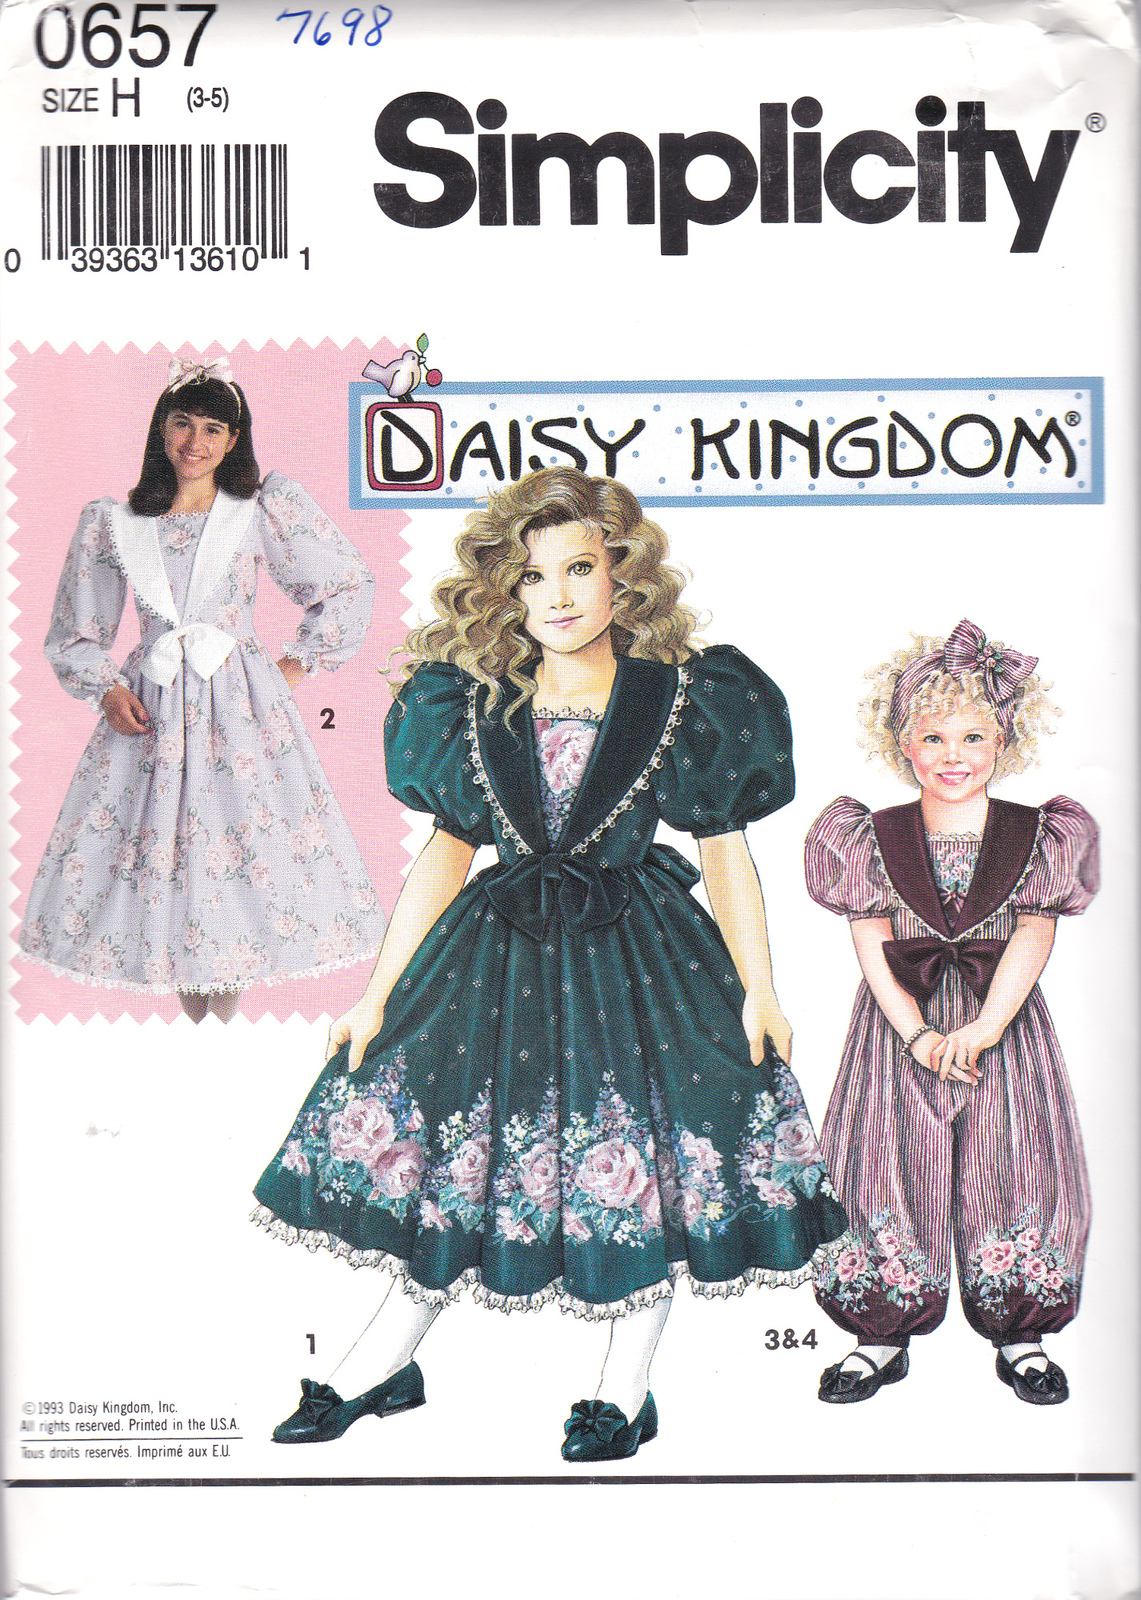 Simplicity 0657 or 7698 Girls Sewing Pattern Childs Romper Dress Sizes 3-5 Uncut